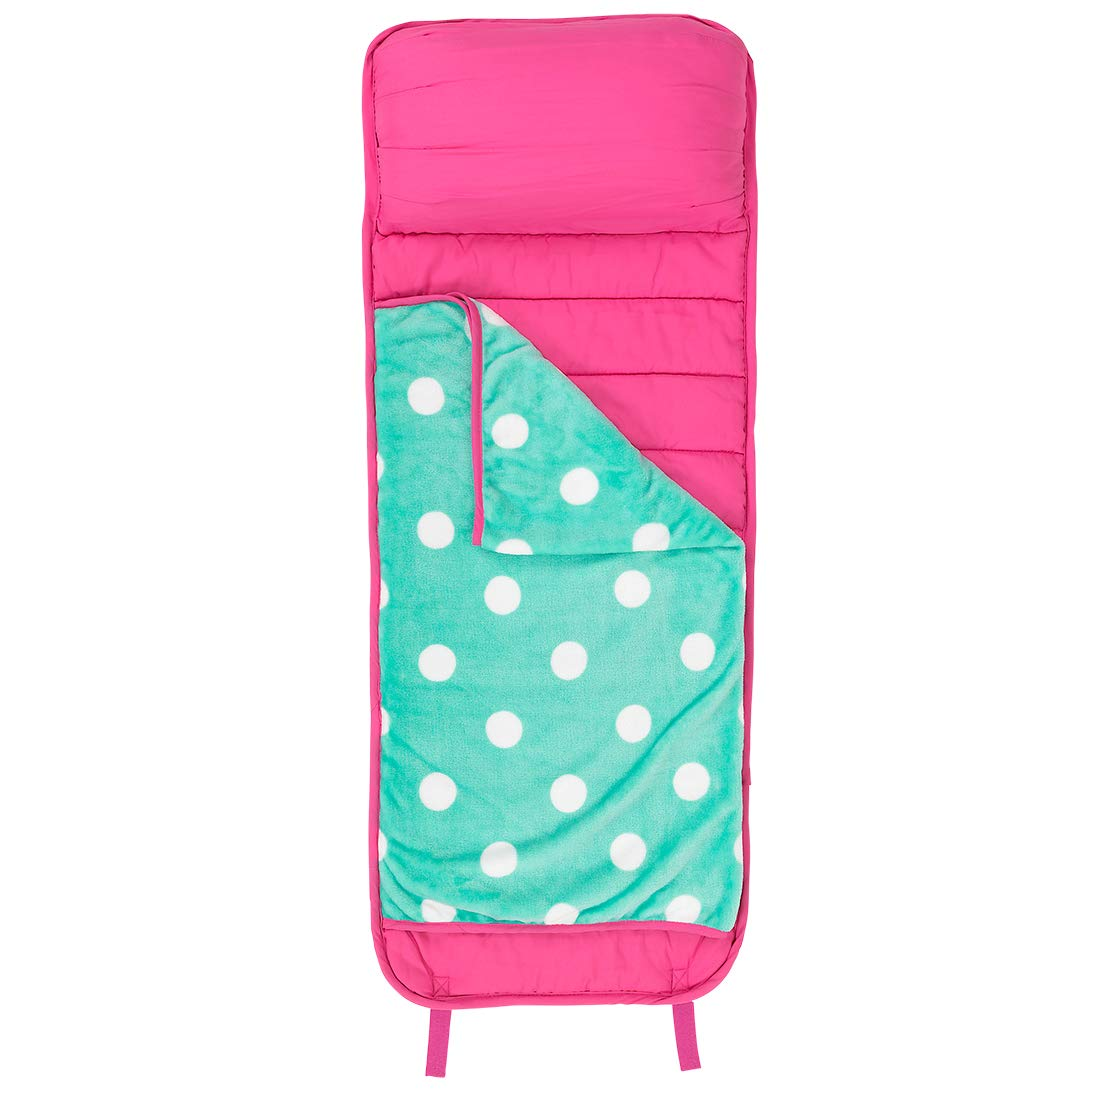 WB Nap Mat Hot Pink Mint Dot 47 x 18 Polyester Plush Fabric Slumber Sleeping Bag